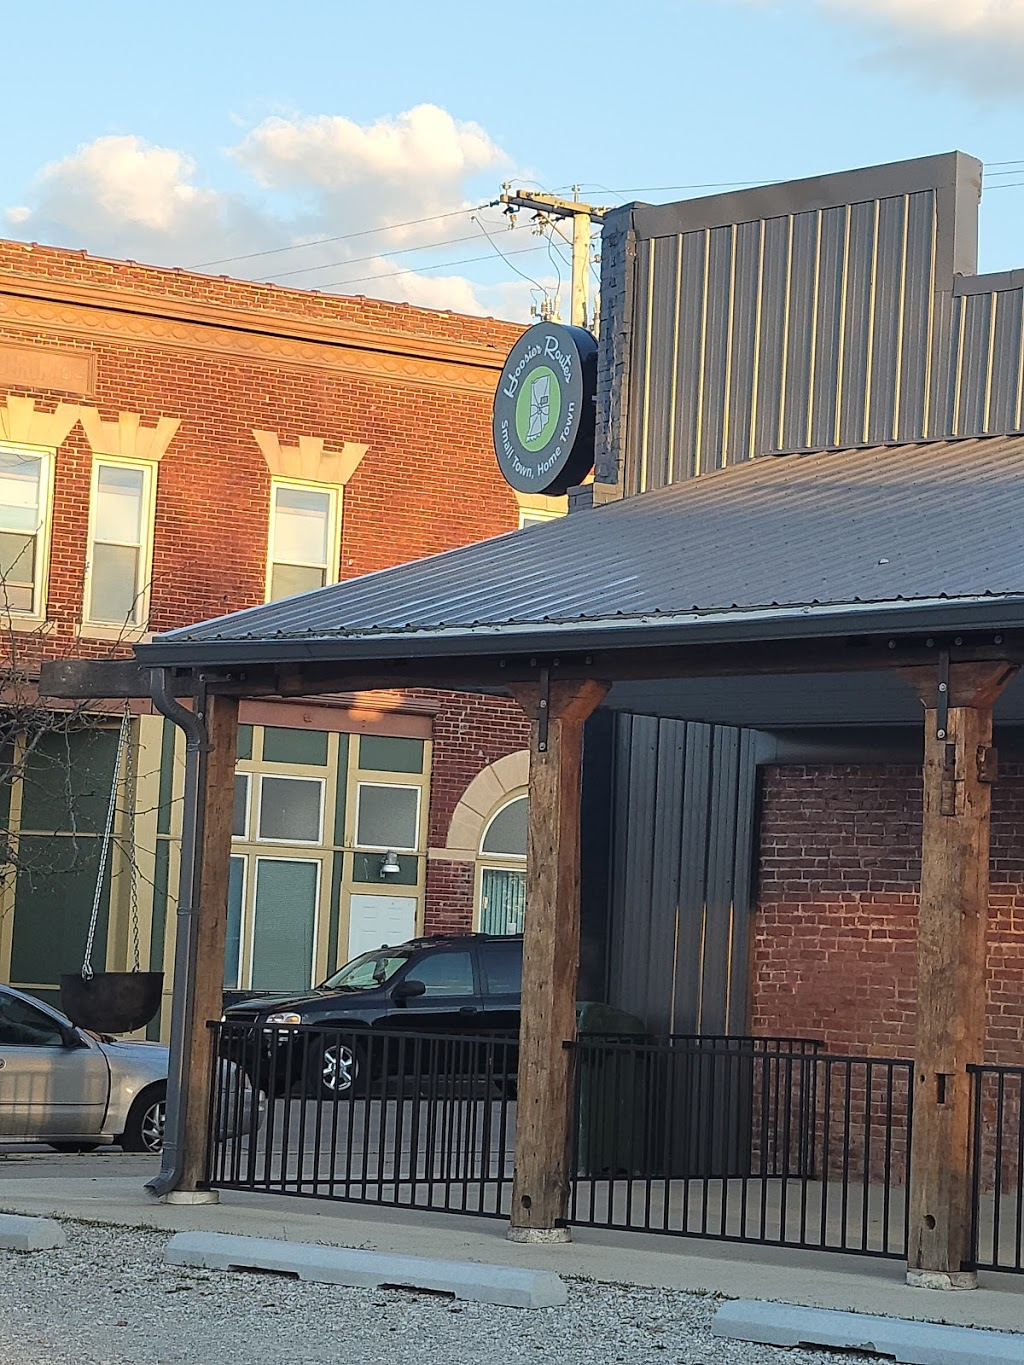 Hoosier Routes - SMALL TOWN, HOMETOWN | restaurant | 101 N Main St, Summitville, IN 46070, USA